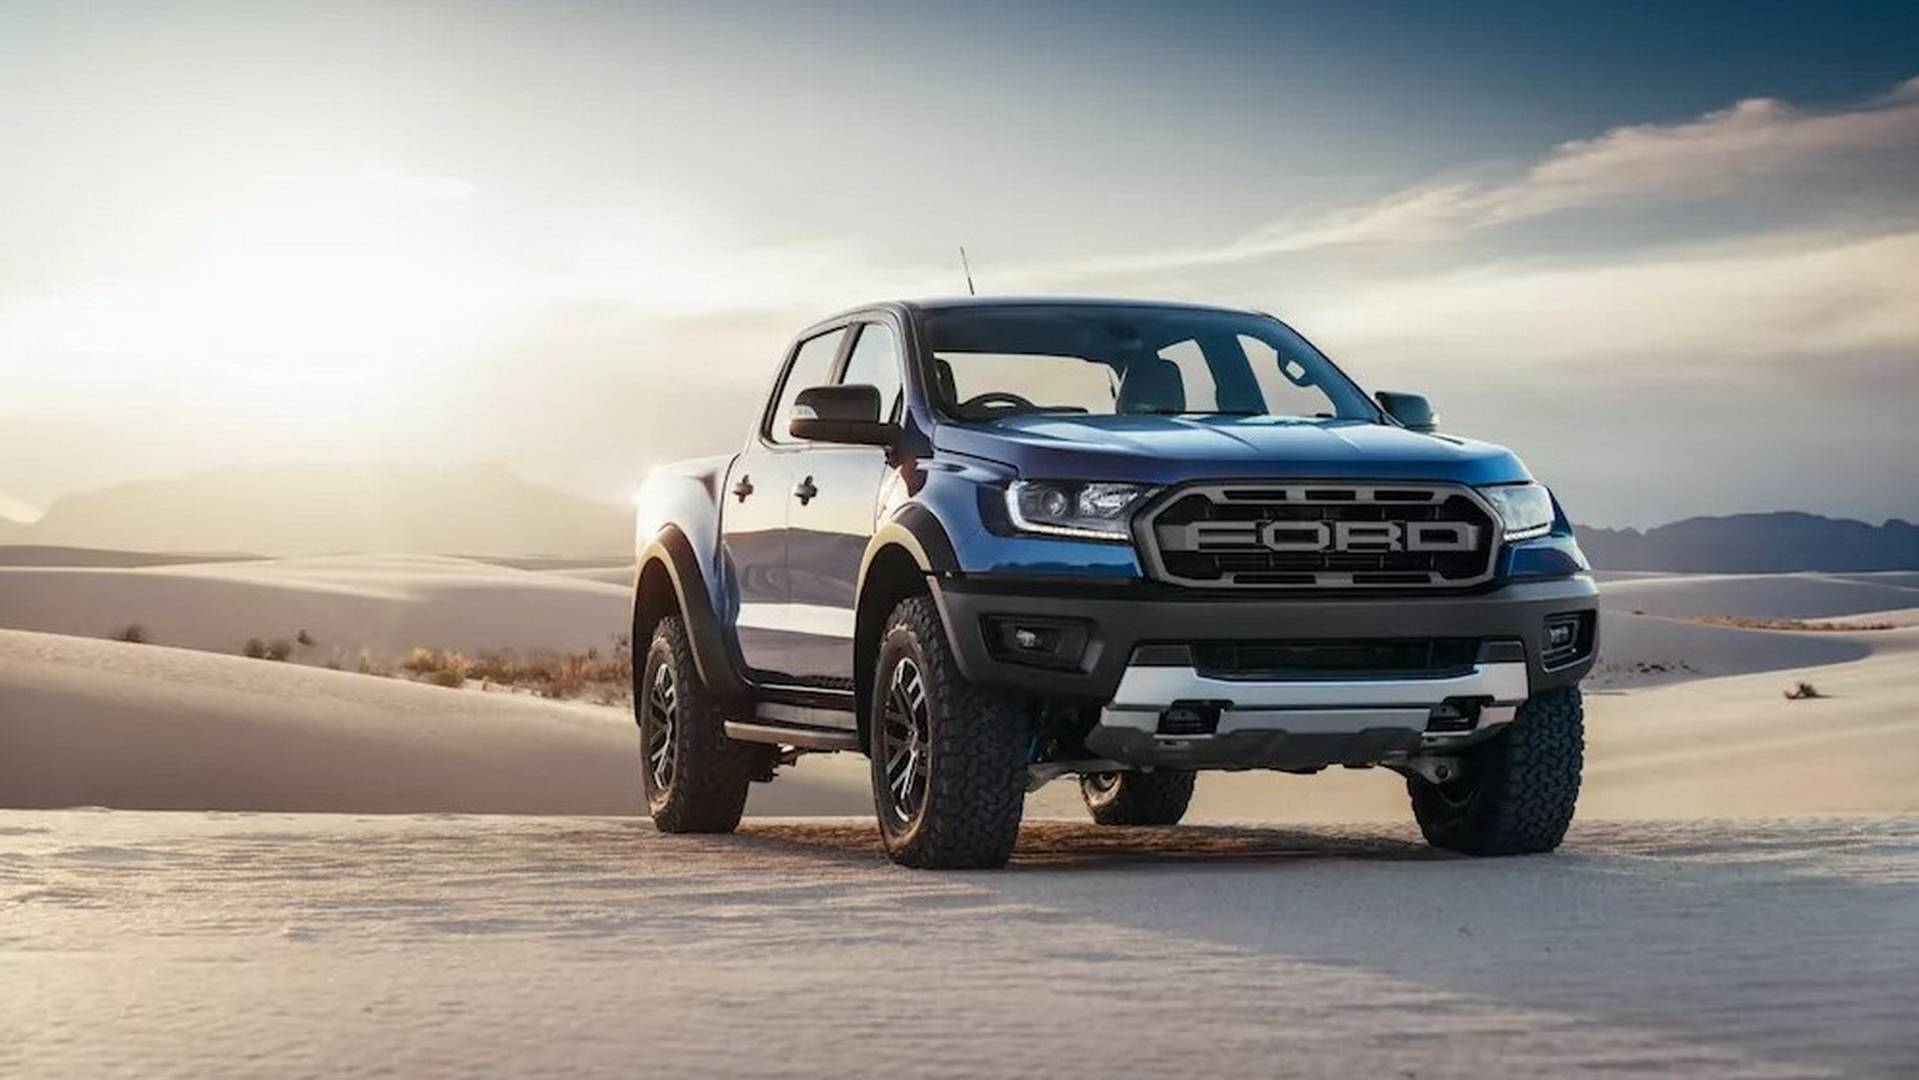 Ford Raptor For Sale >> New Ford Ranger Raptor Coming to The UK in Early 2019 - autoevolution